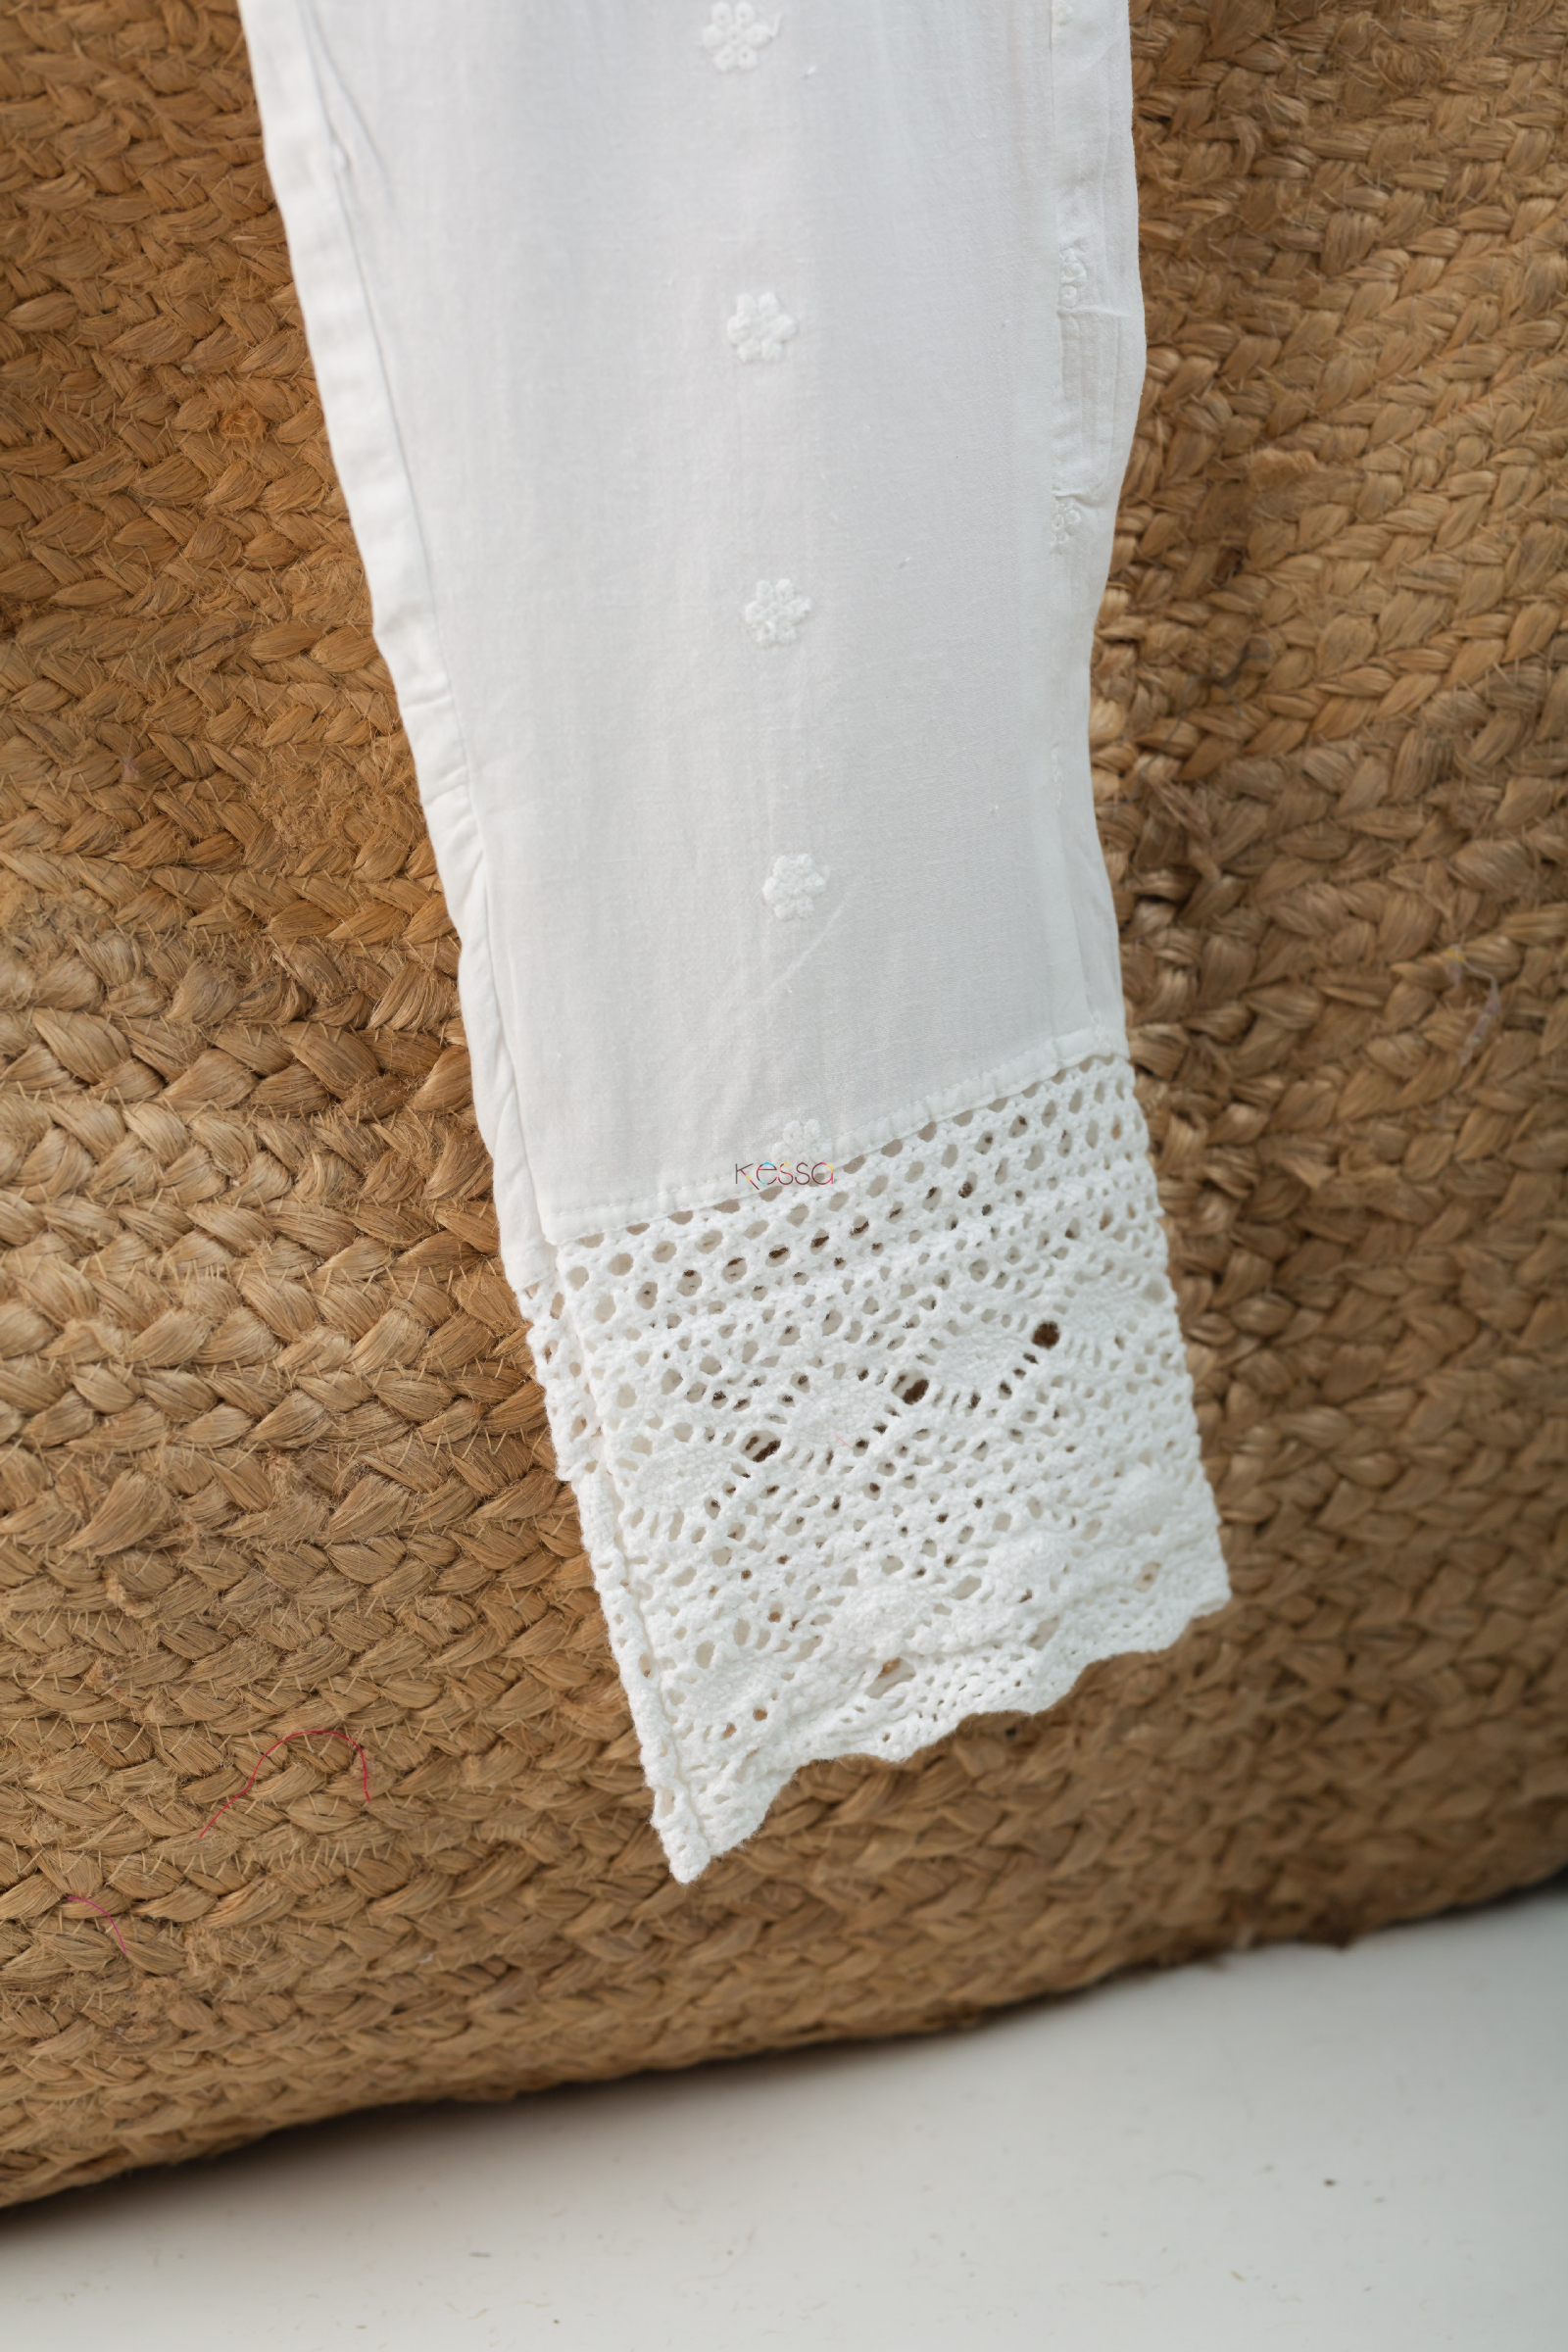 Kessa Ve06 Lace White Cotton Muslin Pant With Lace Bottom Hd